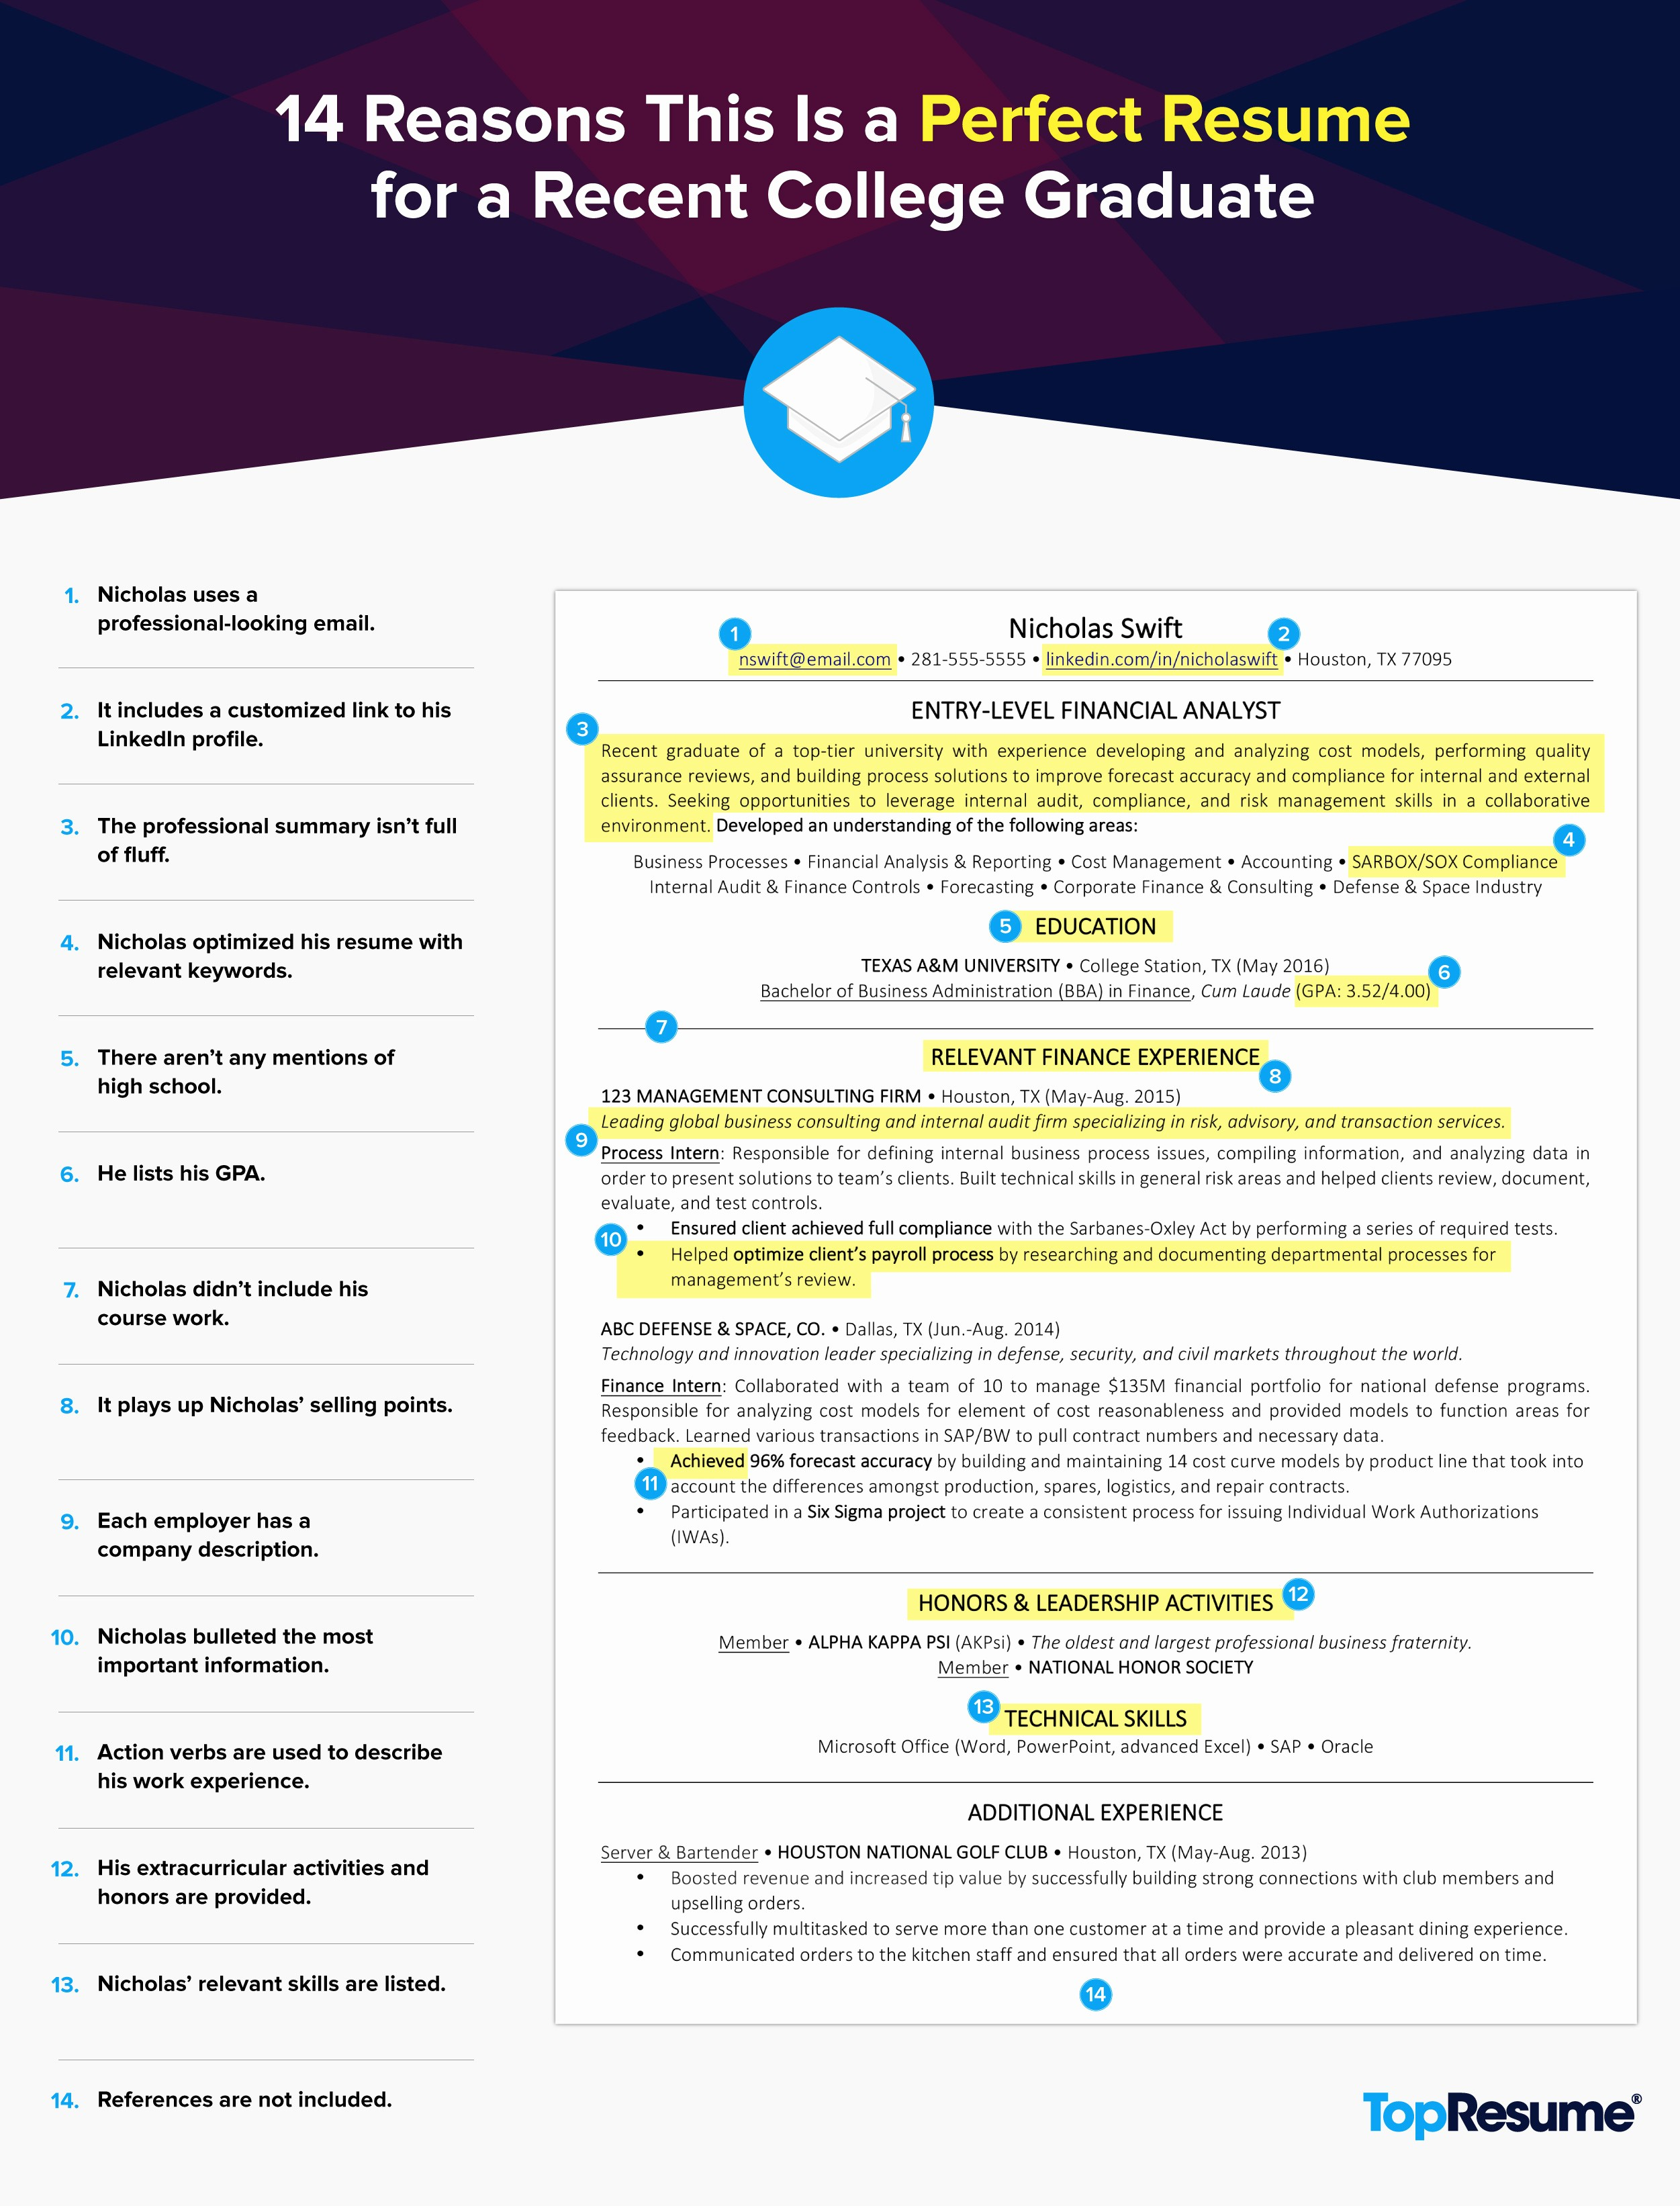 Sample Resume for College Graduate Awesome 14 Reasons This is A Perfect Recent College Graduate